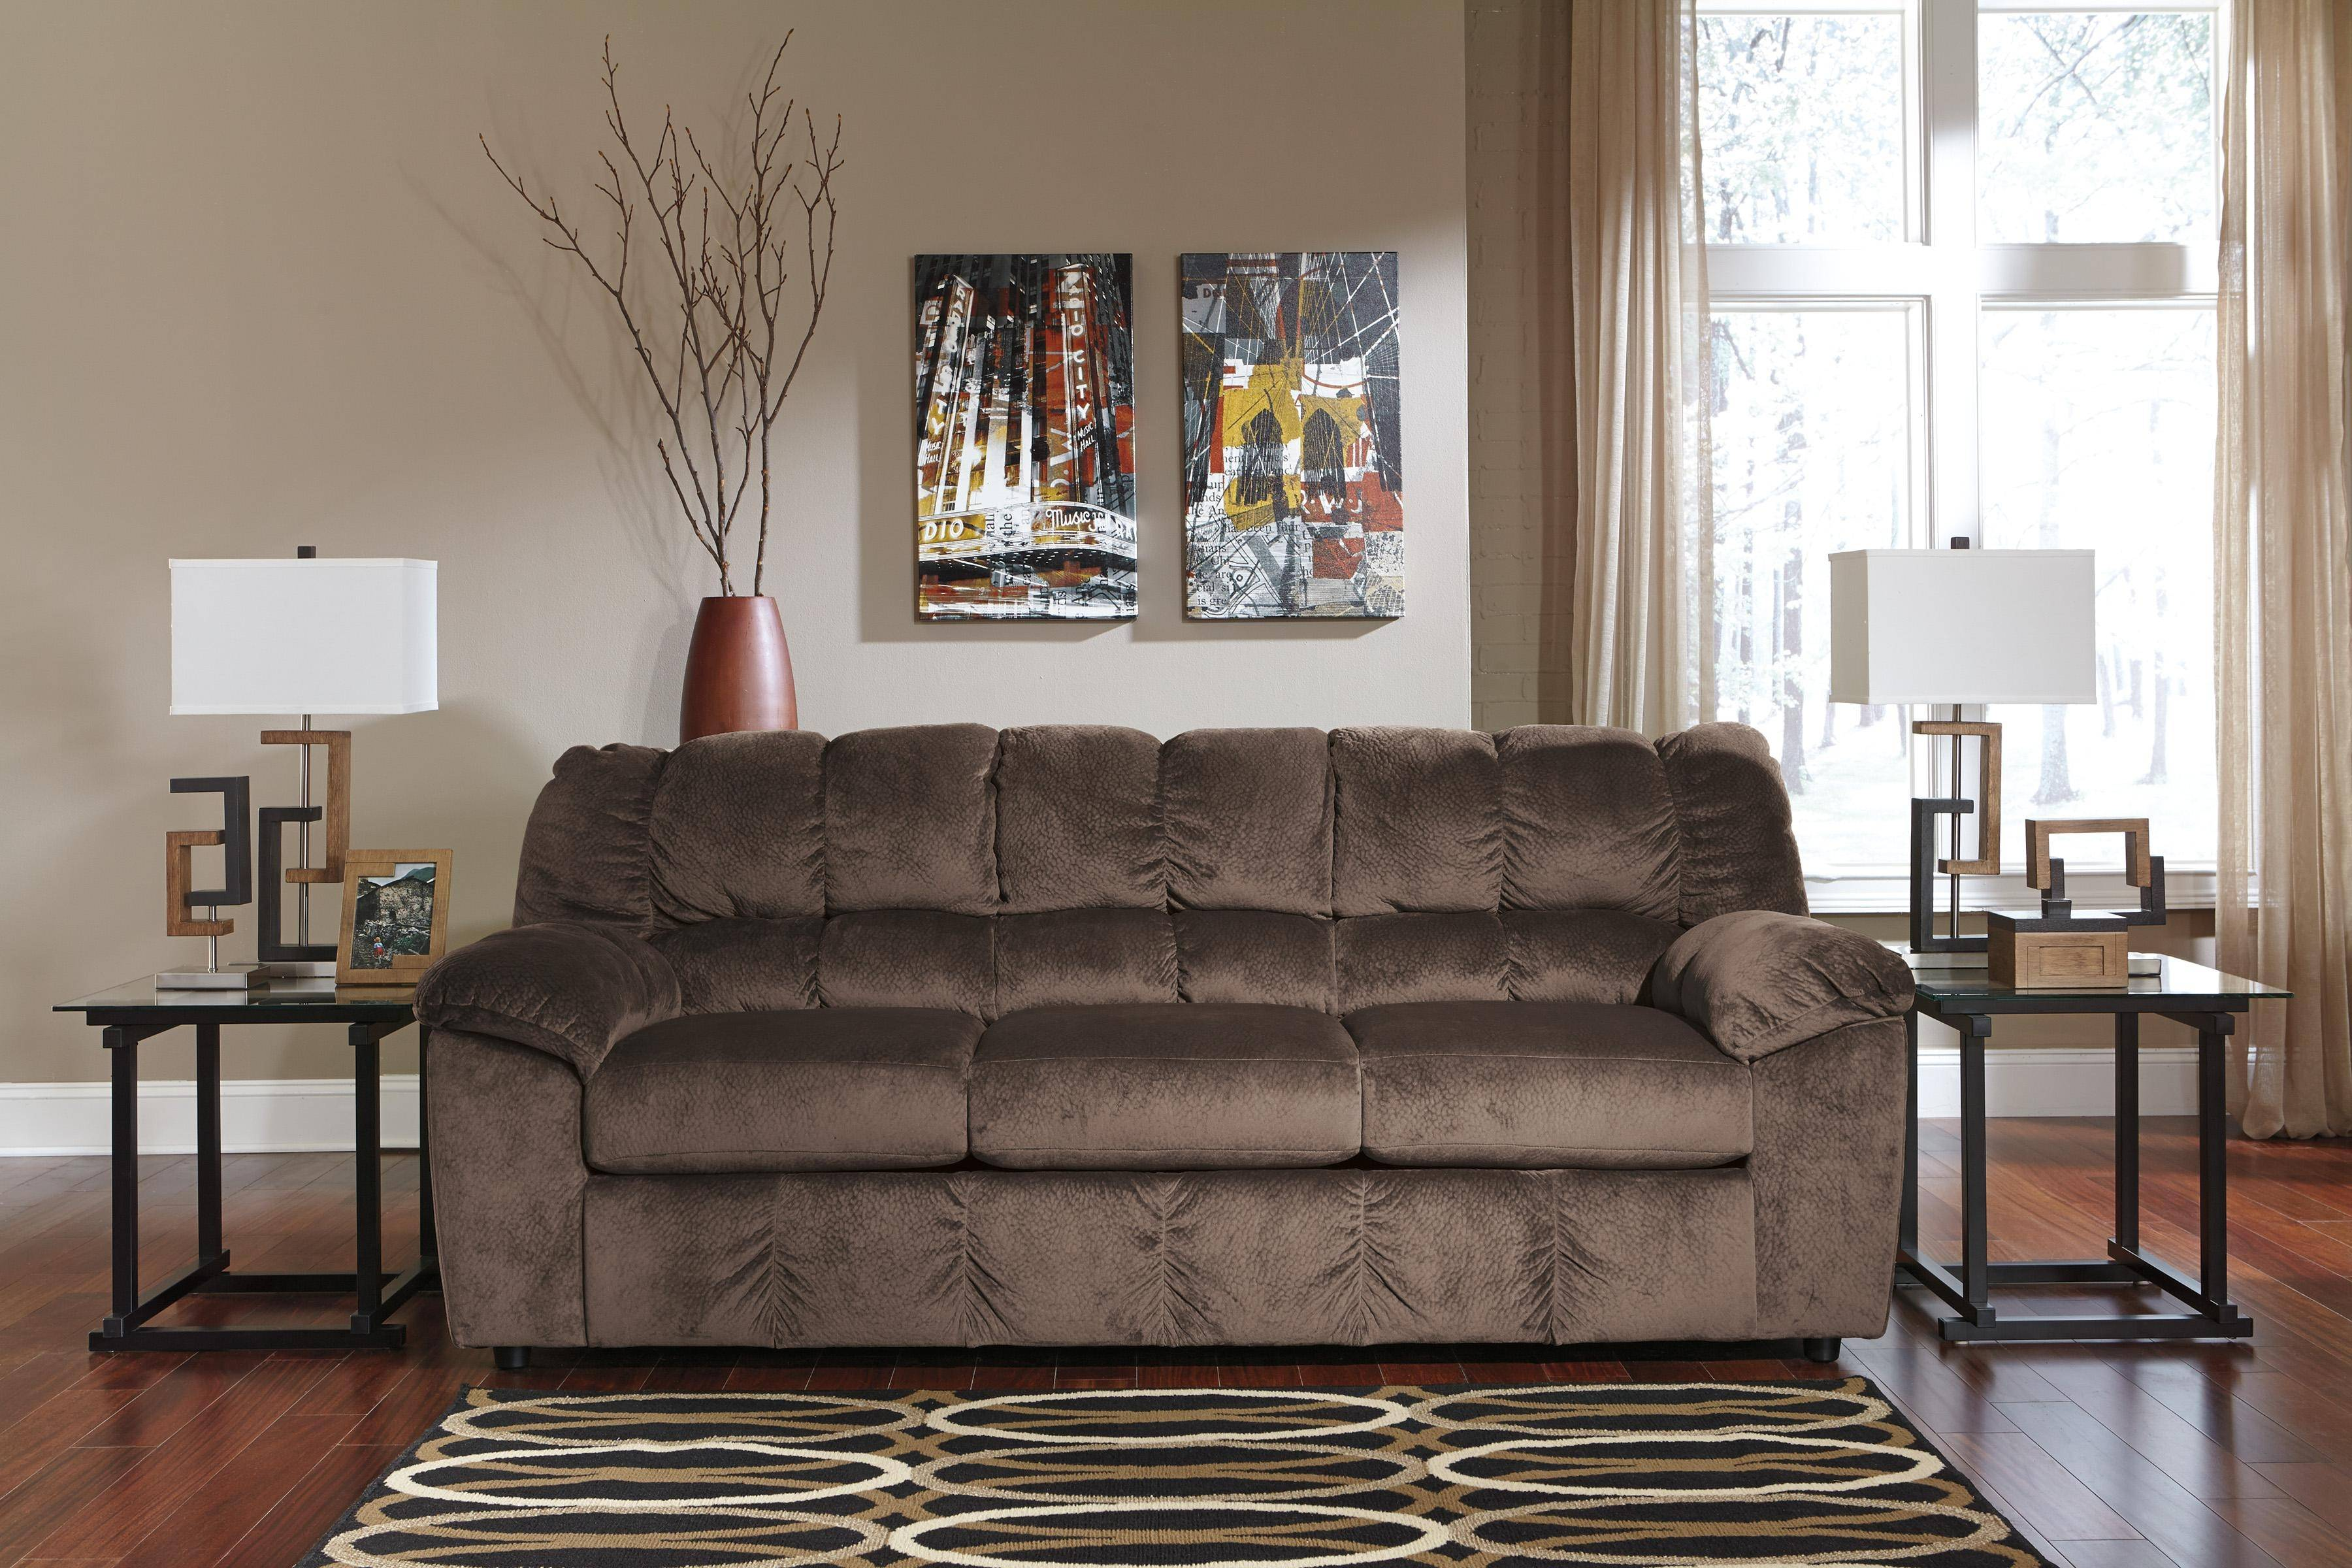 Ashley Julson 3 Piece Living Room Set in Cafe (26604-38-35 ...